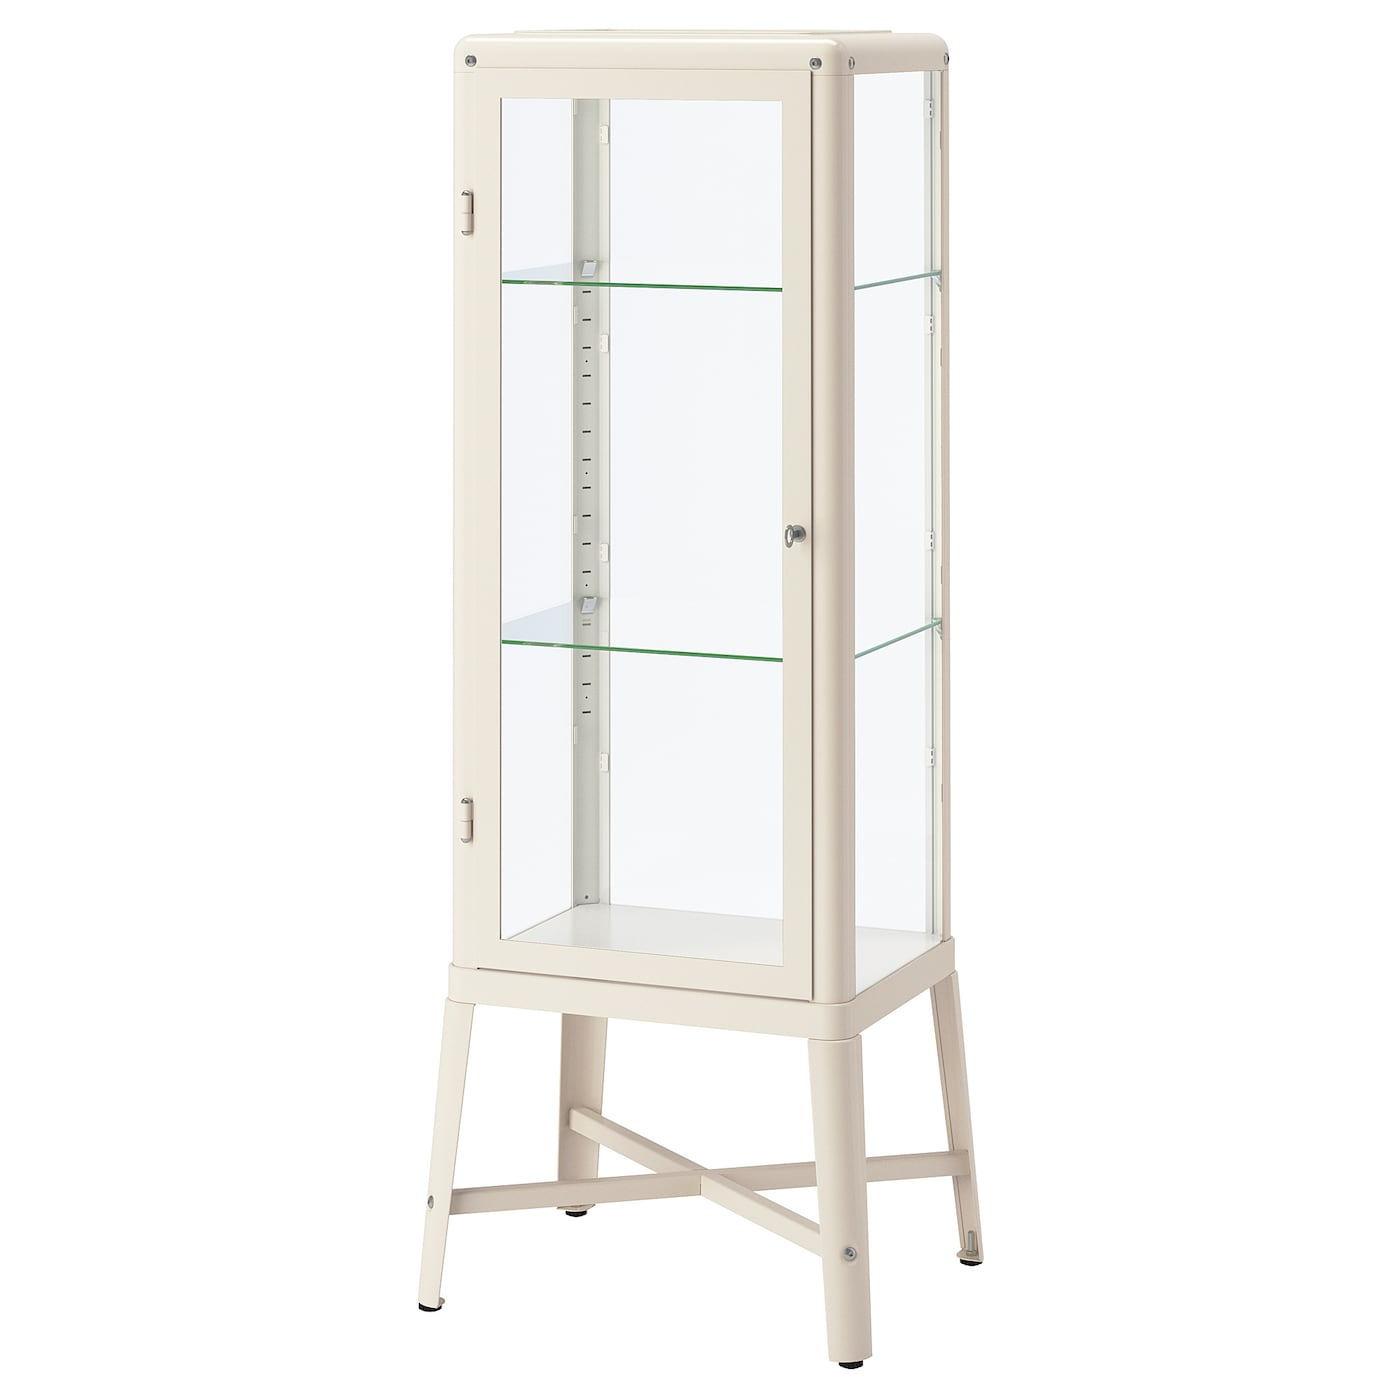 Ikea French Doors: FABRIKÖR Glass-door Cabinet Beige 57 X 150 Cm